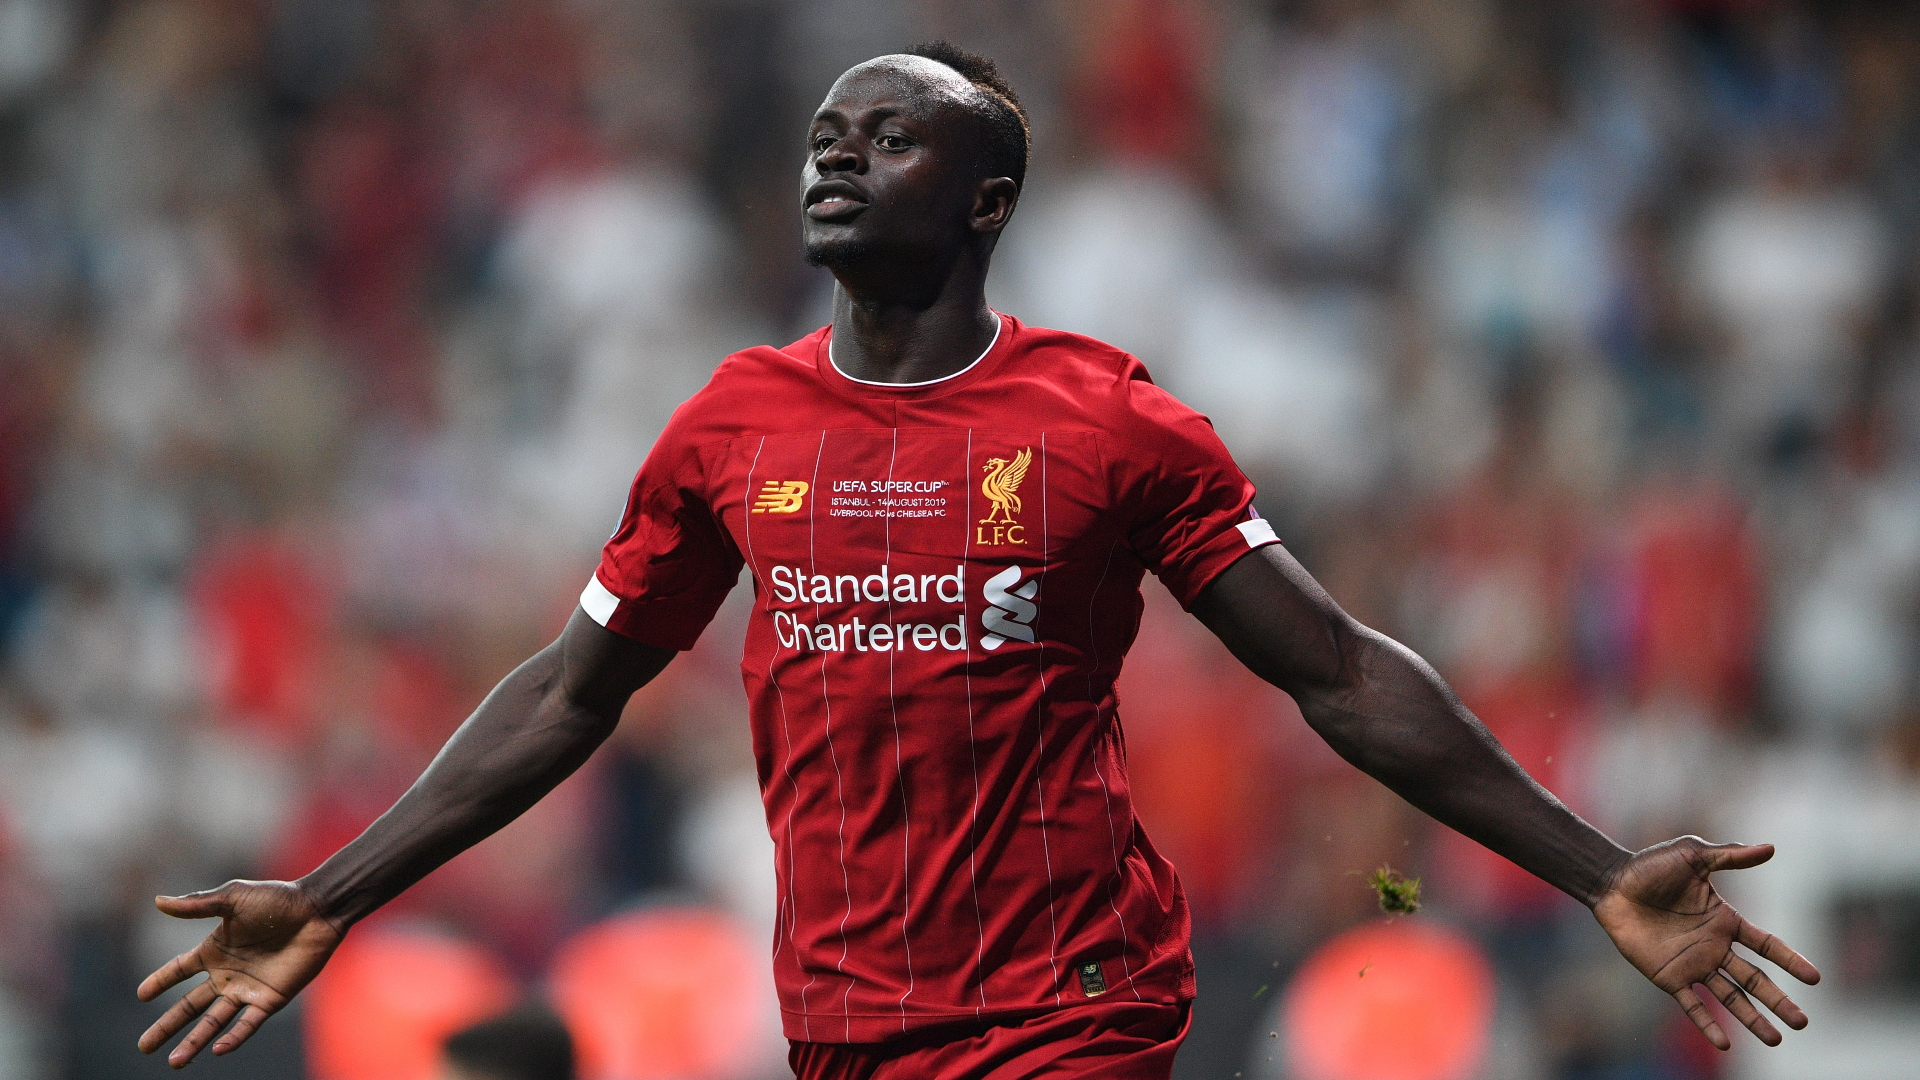 Senegal's Sadio Mane gunning for African Player of the Year - Sports Leo